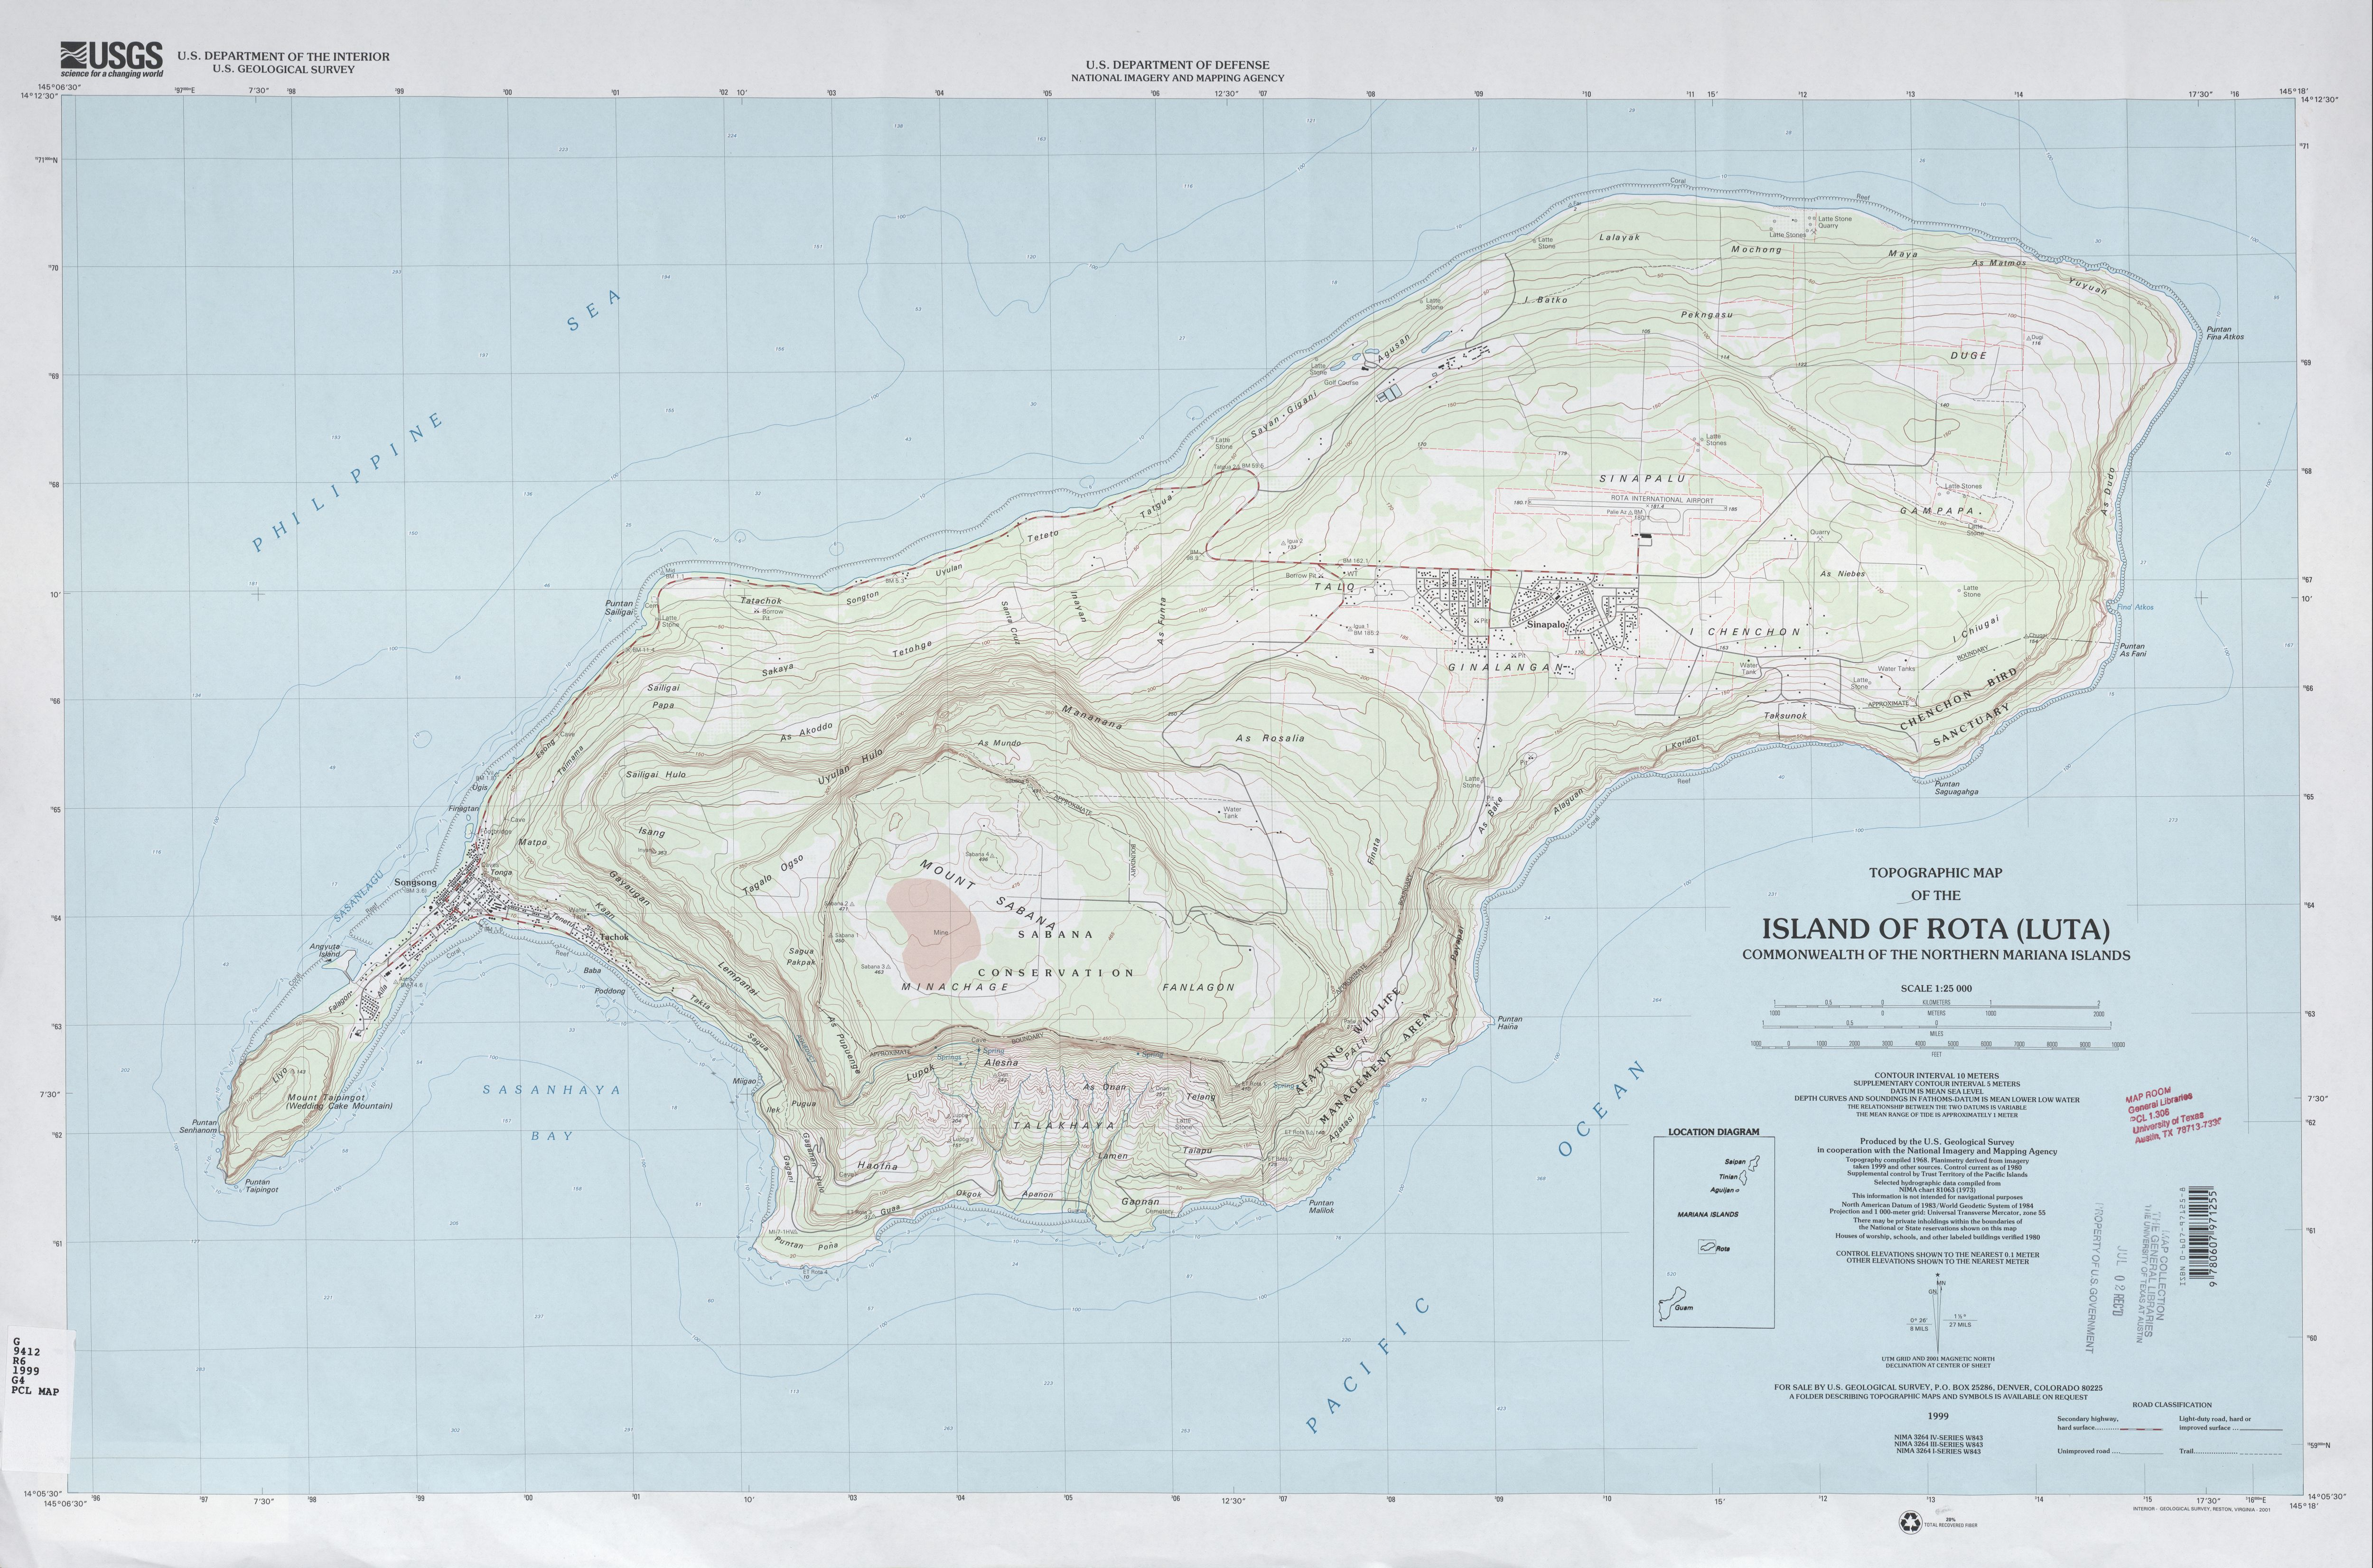 Northern Mariana Islands Maps - Perry-Castañeda Map Collection - UT ...